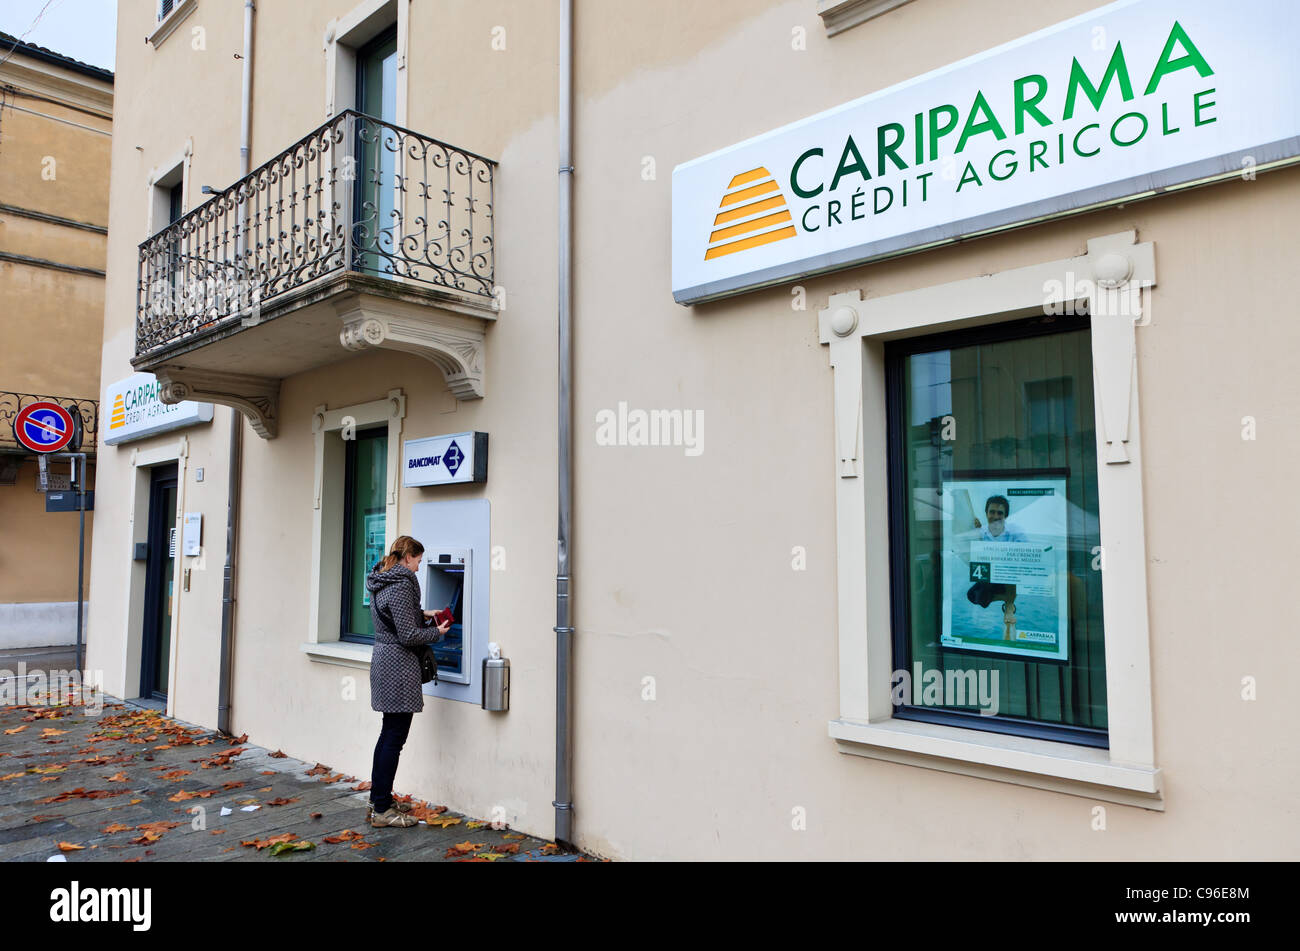 Woman using a cash machine, Sissa, Italy - Stock Image